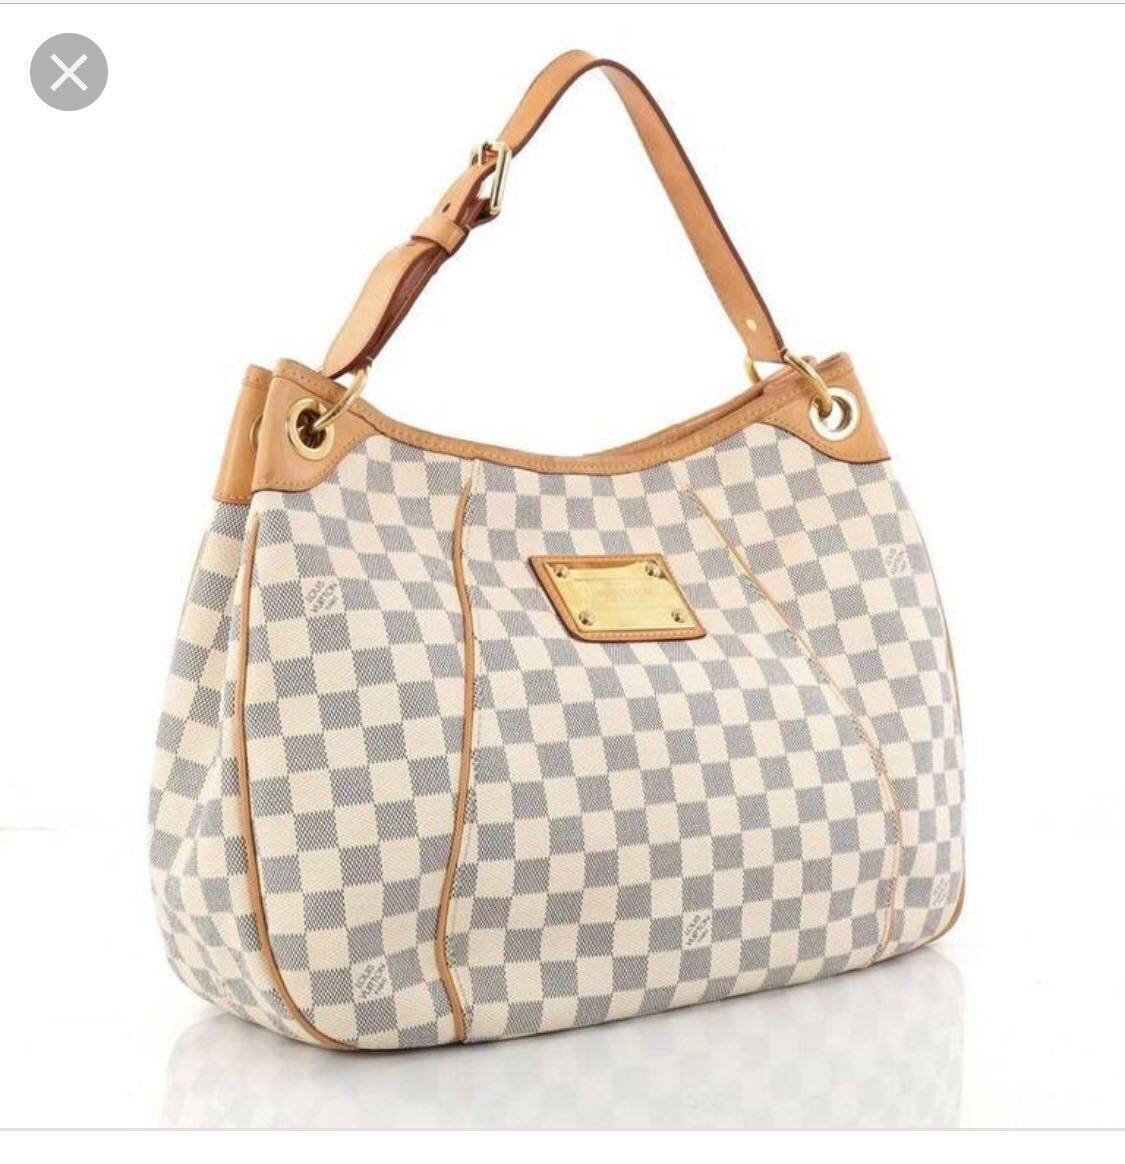 4c1ee1fda8b Louis Vuitton Galliera Handbag Damier PM, Women's Fashion, Bags ...